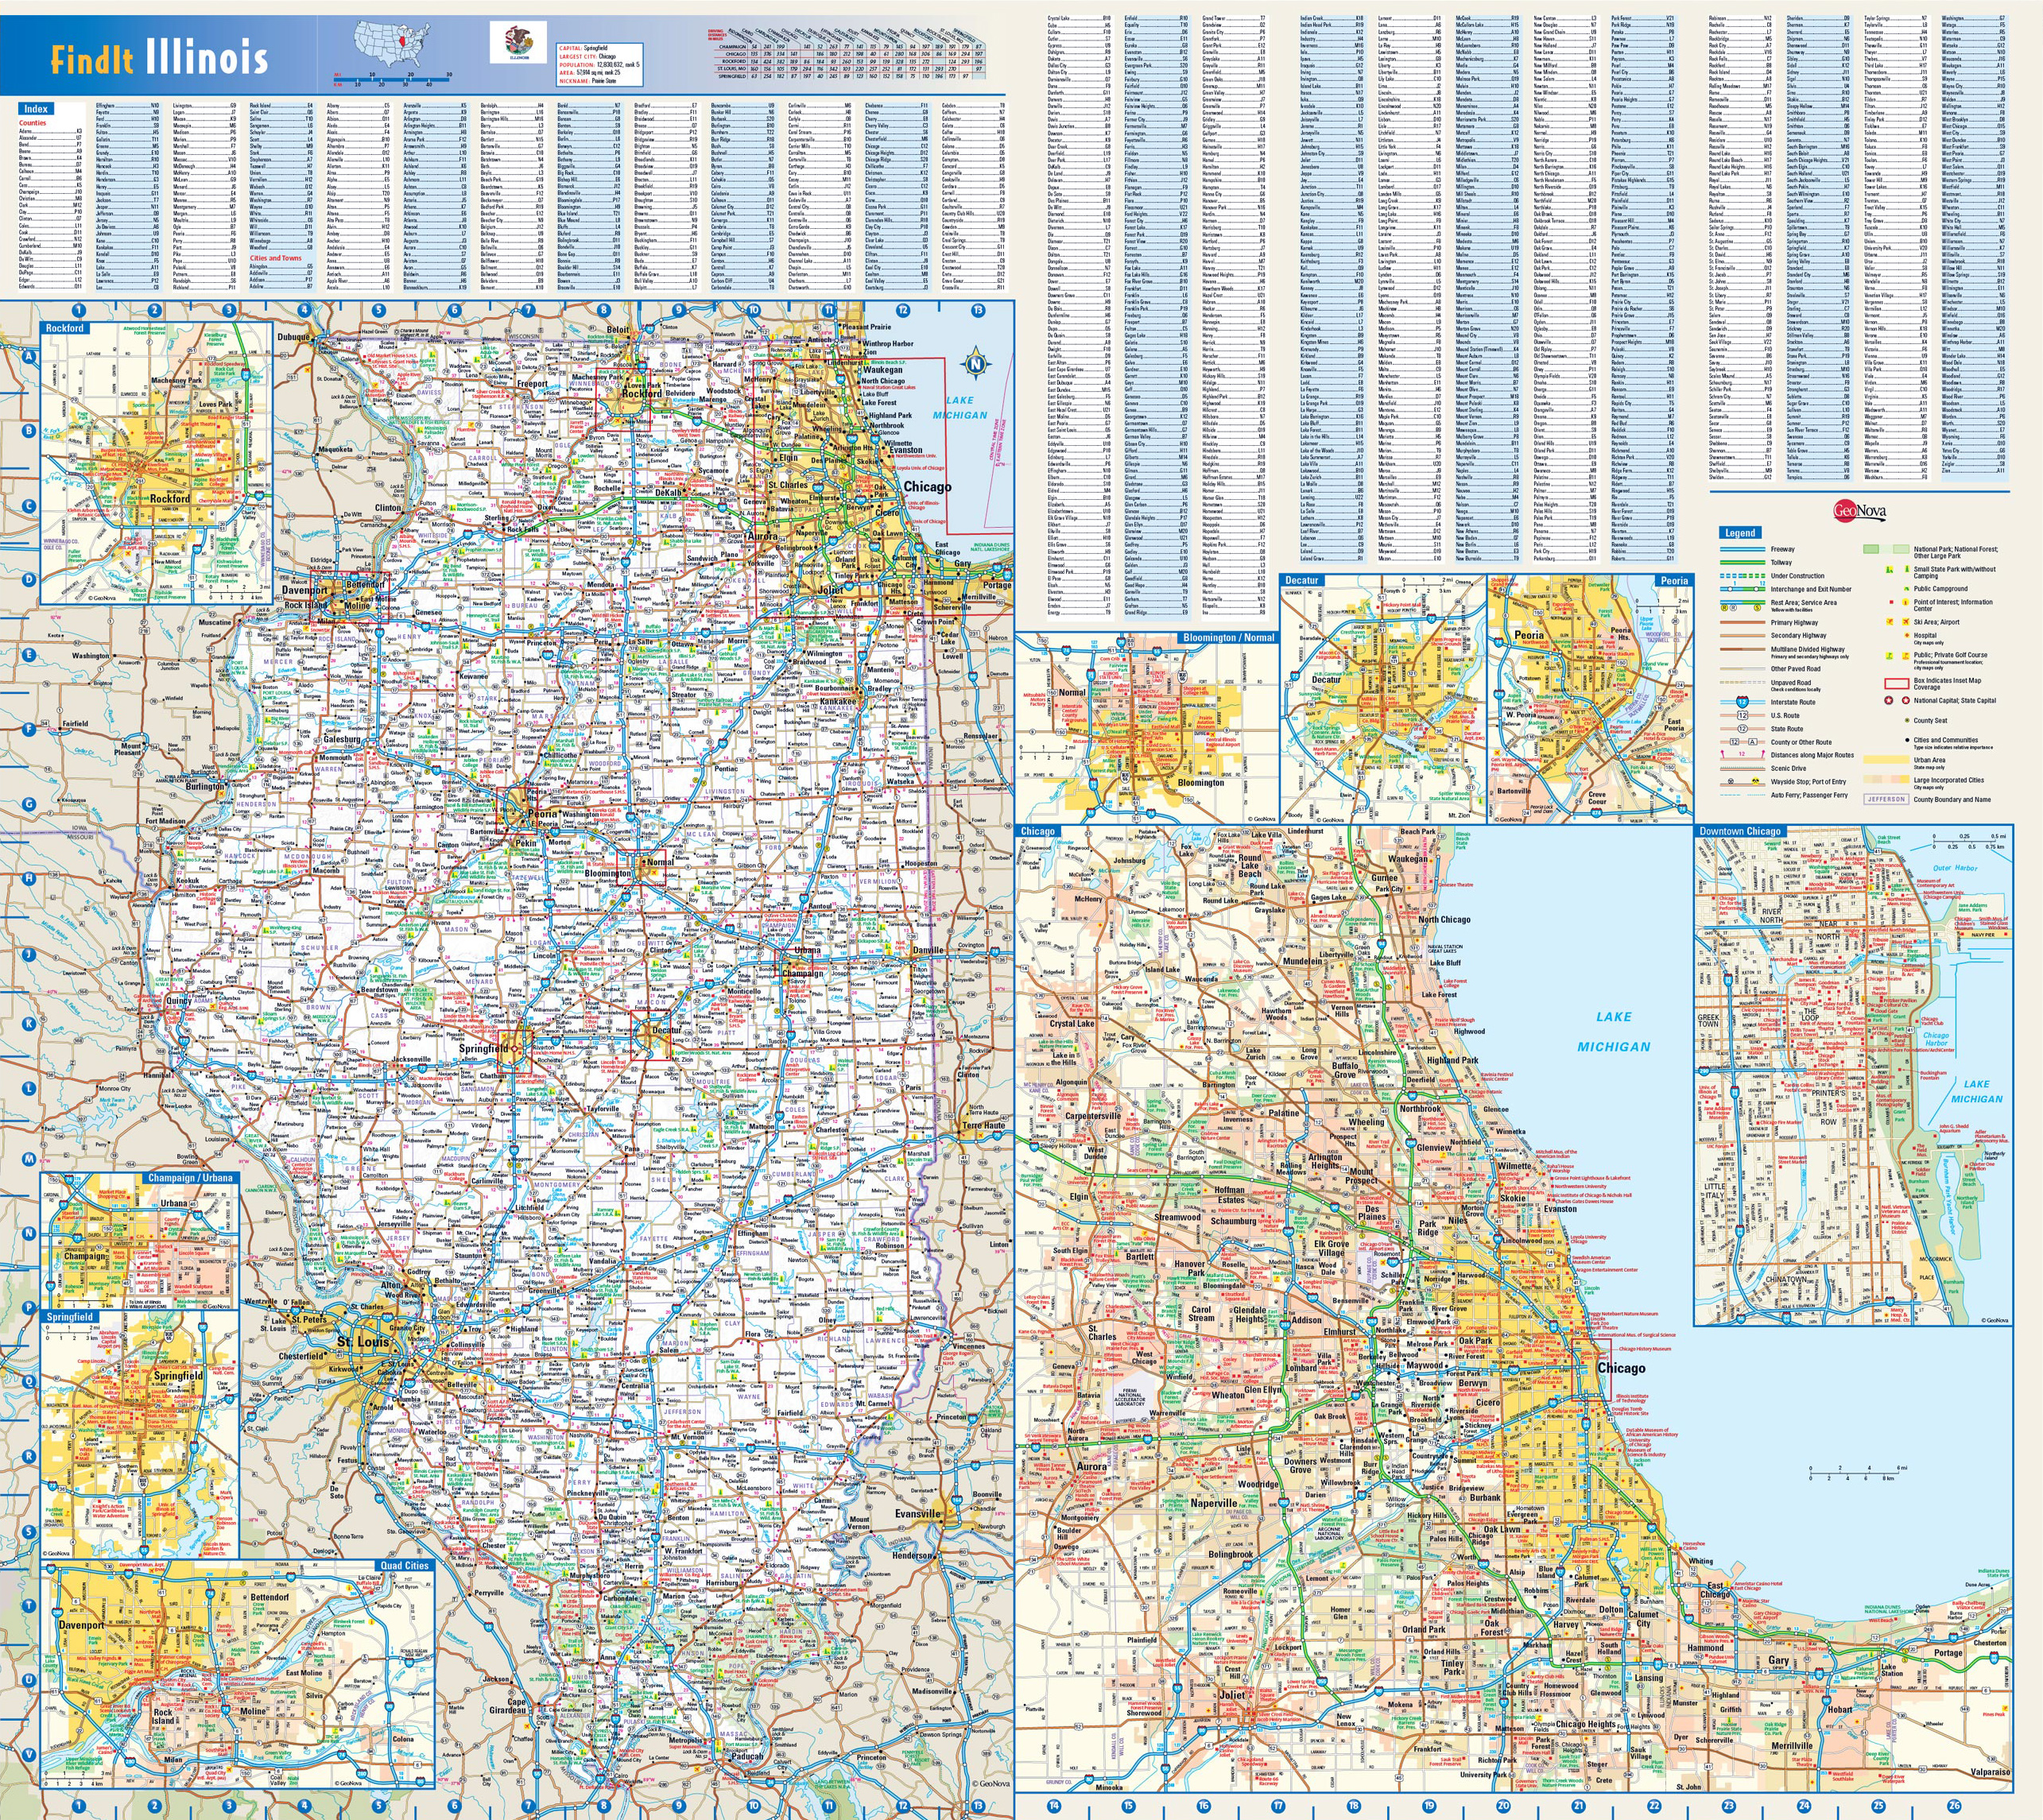 Worksheet. Large roads and highways map of Illinois state with national parks